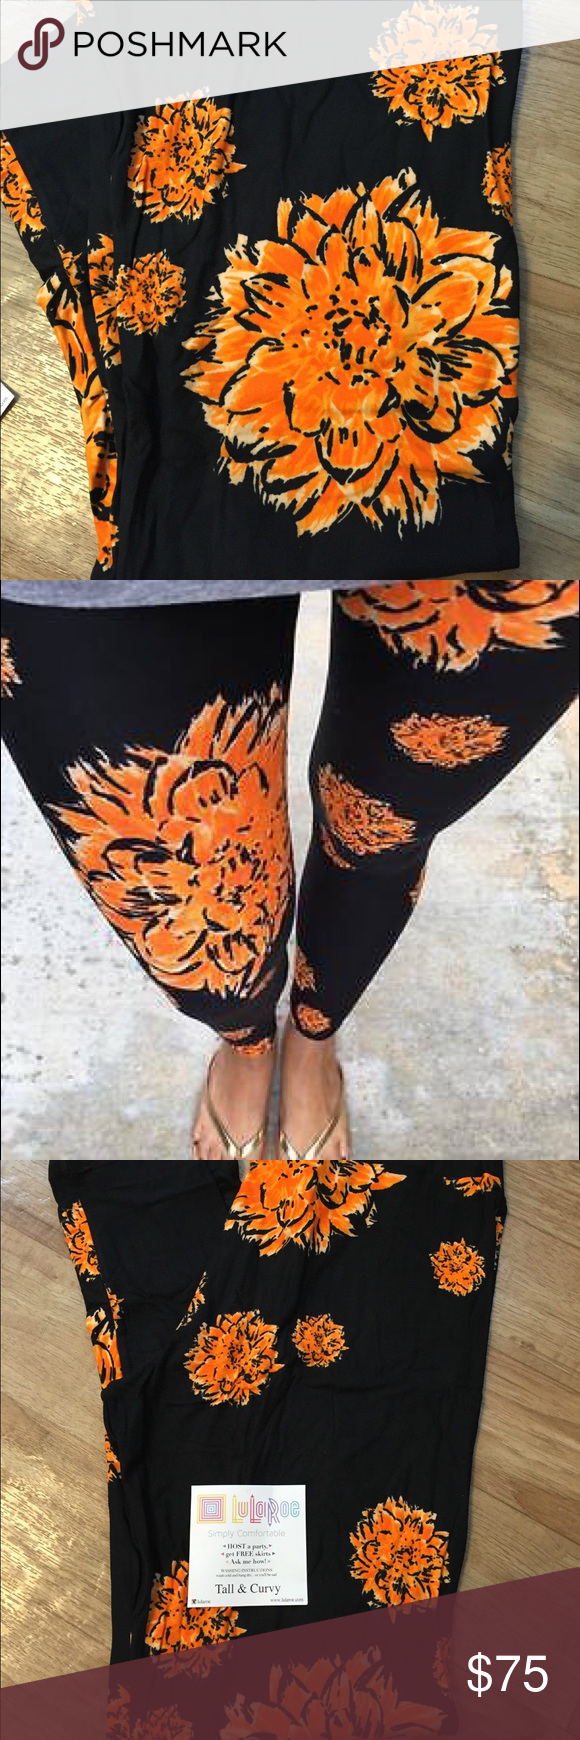 LuLaRoe Black Leggings HTF Unicorn Tall And Curvy TC